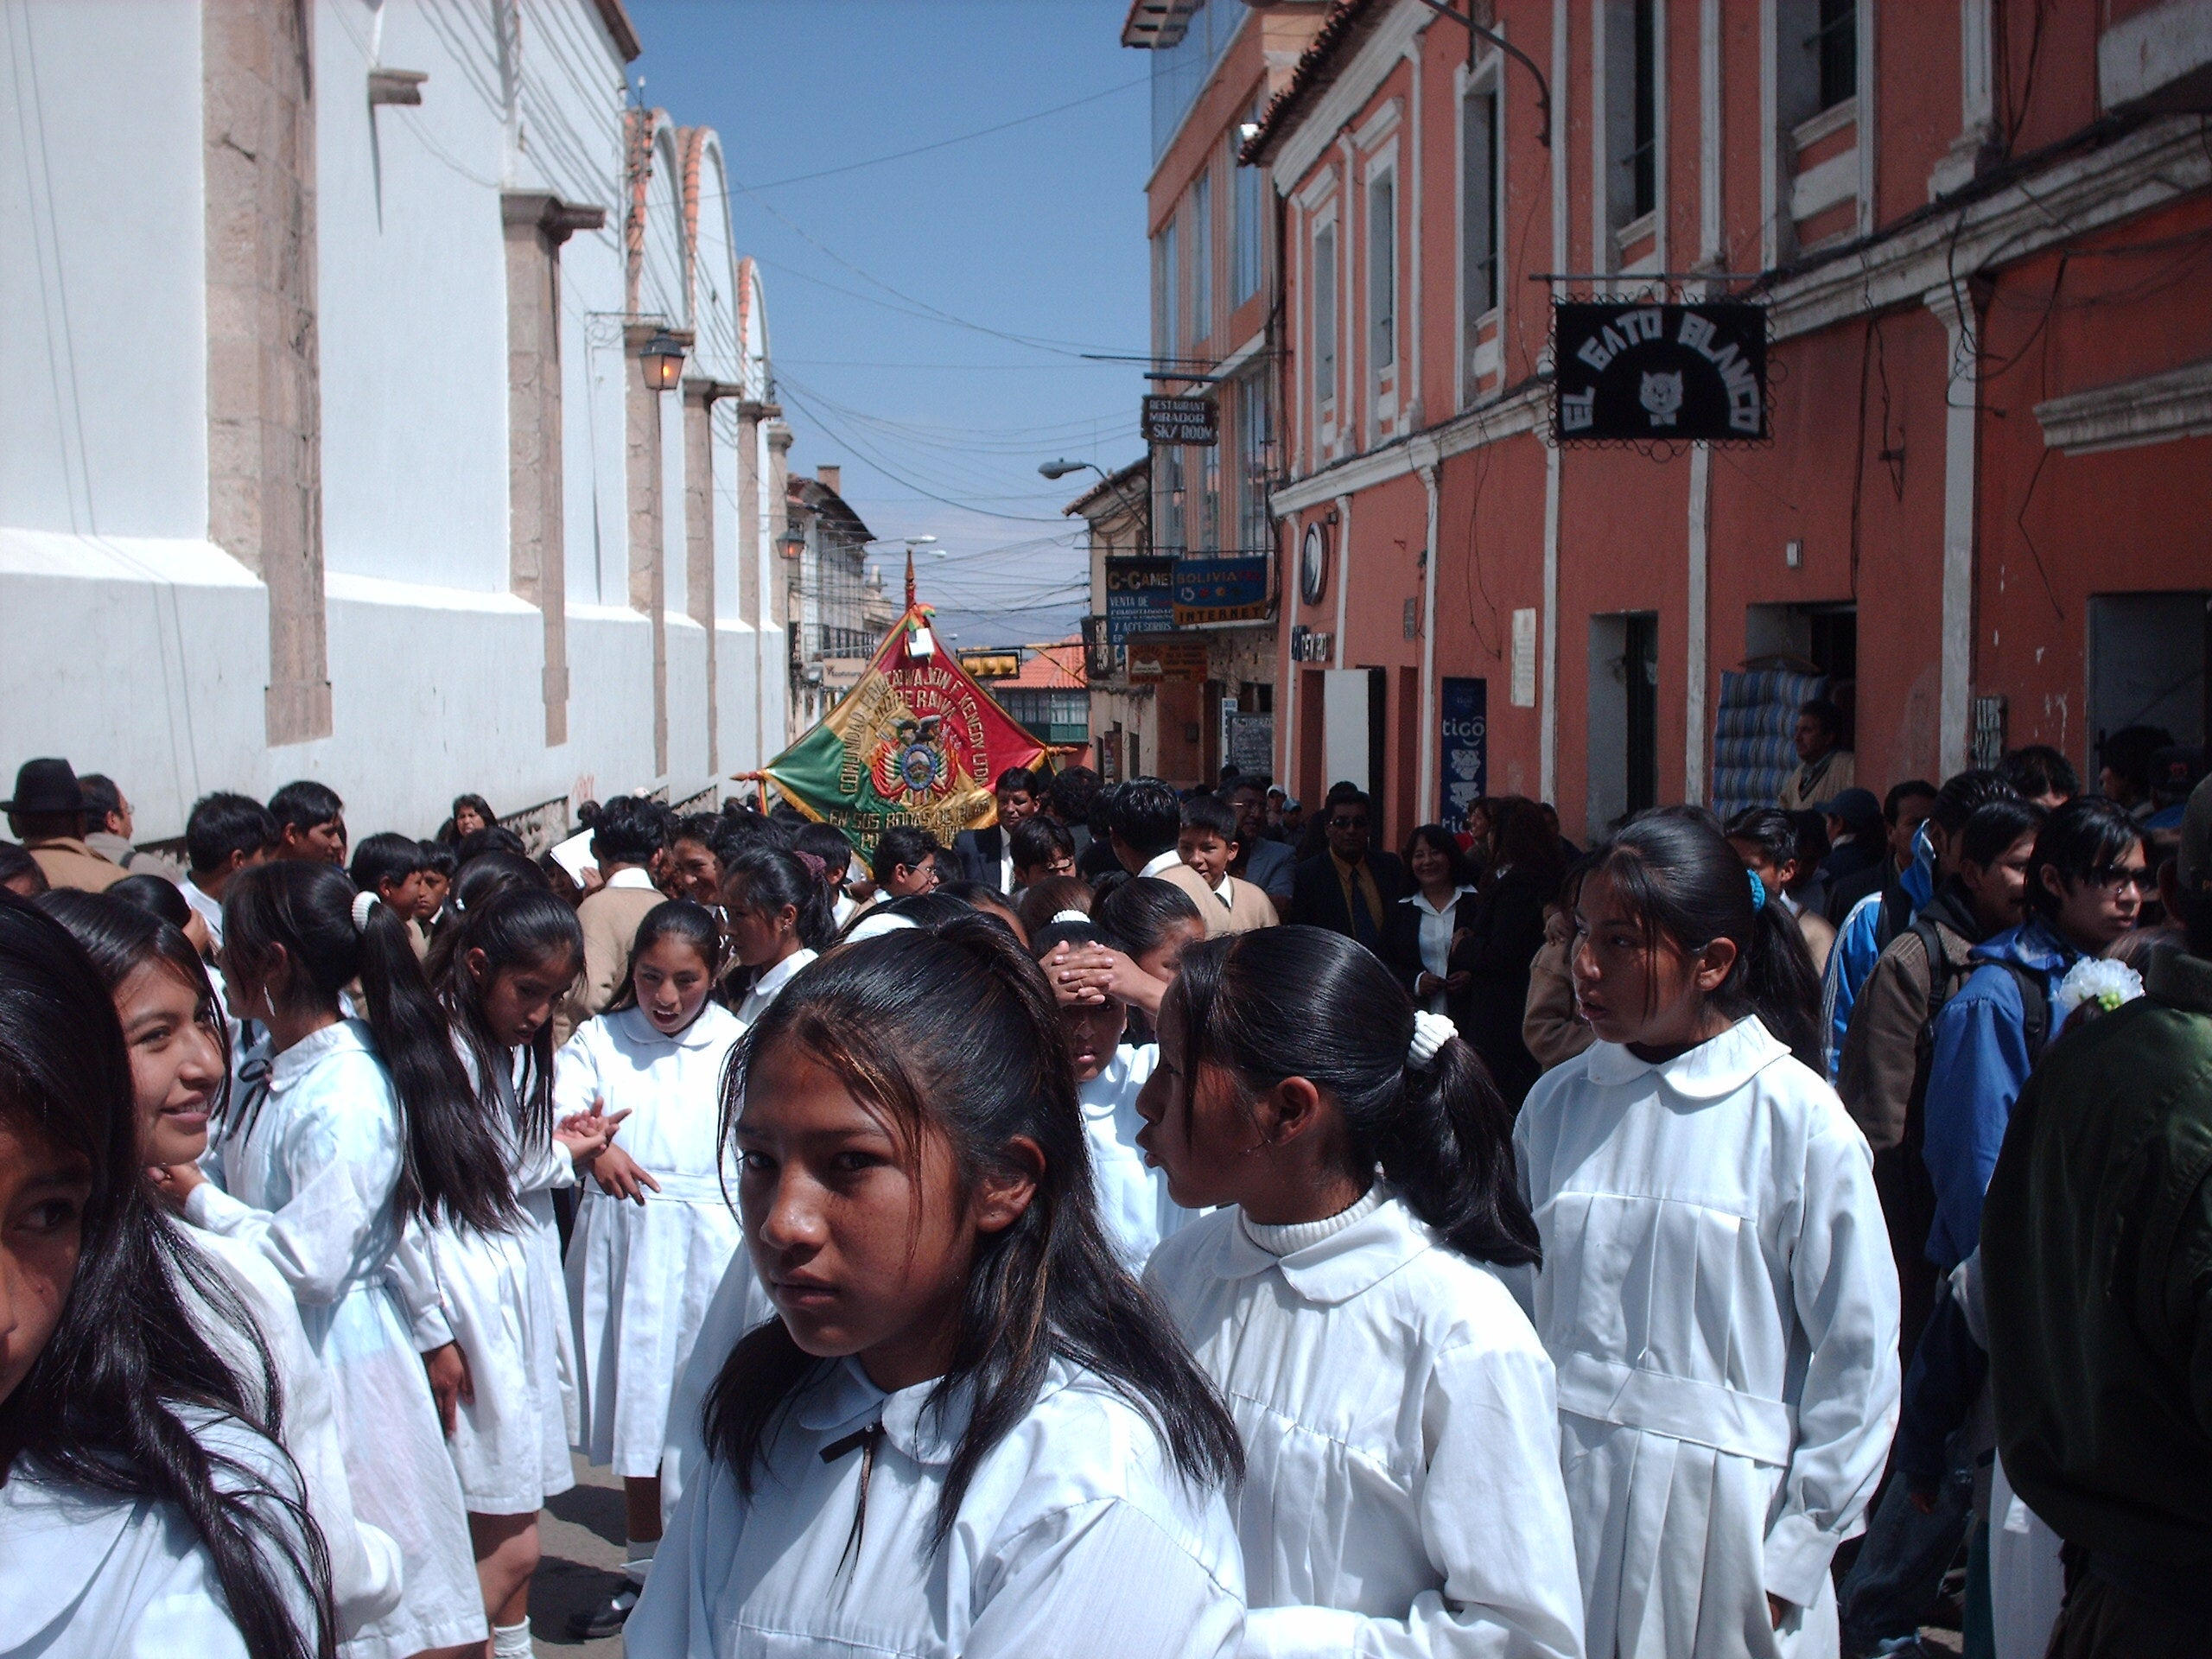 Multitud en Potosí